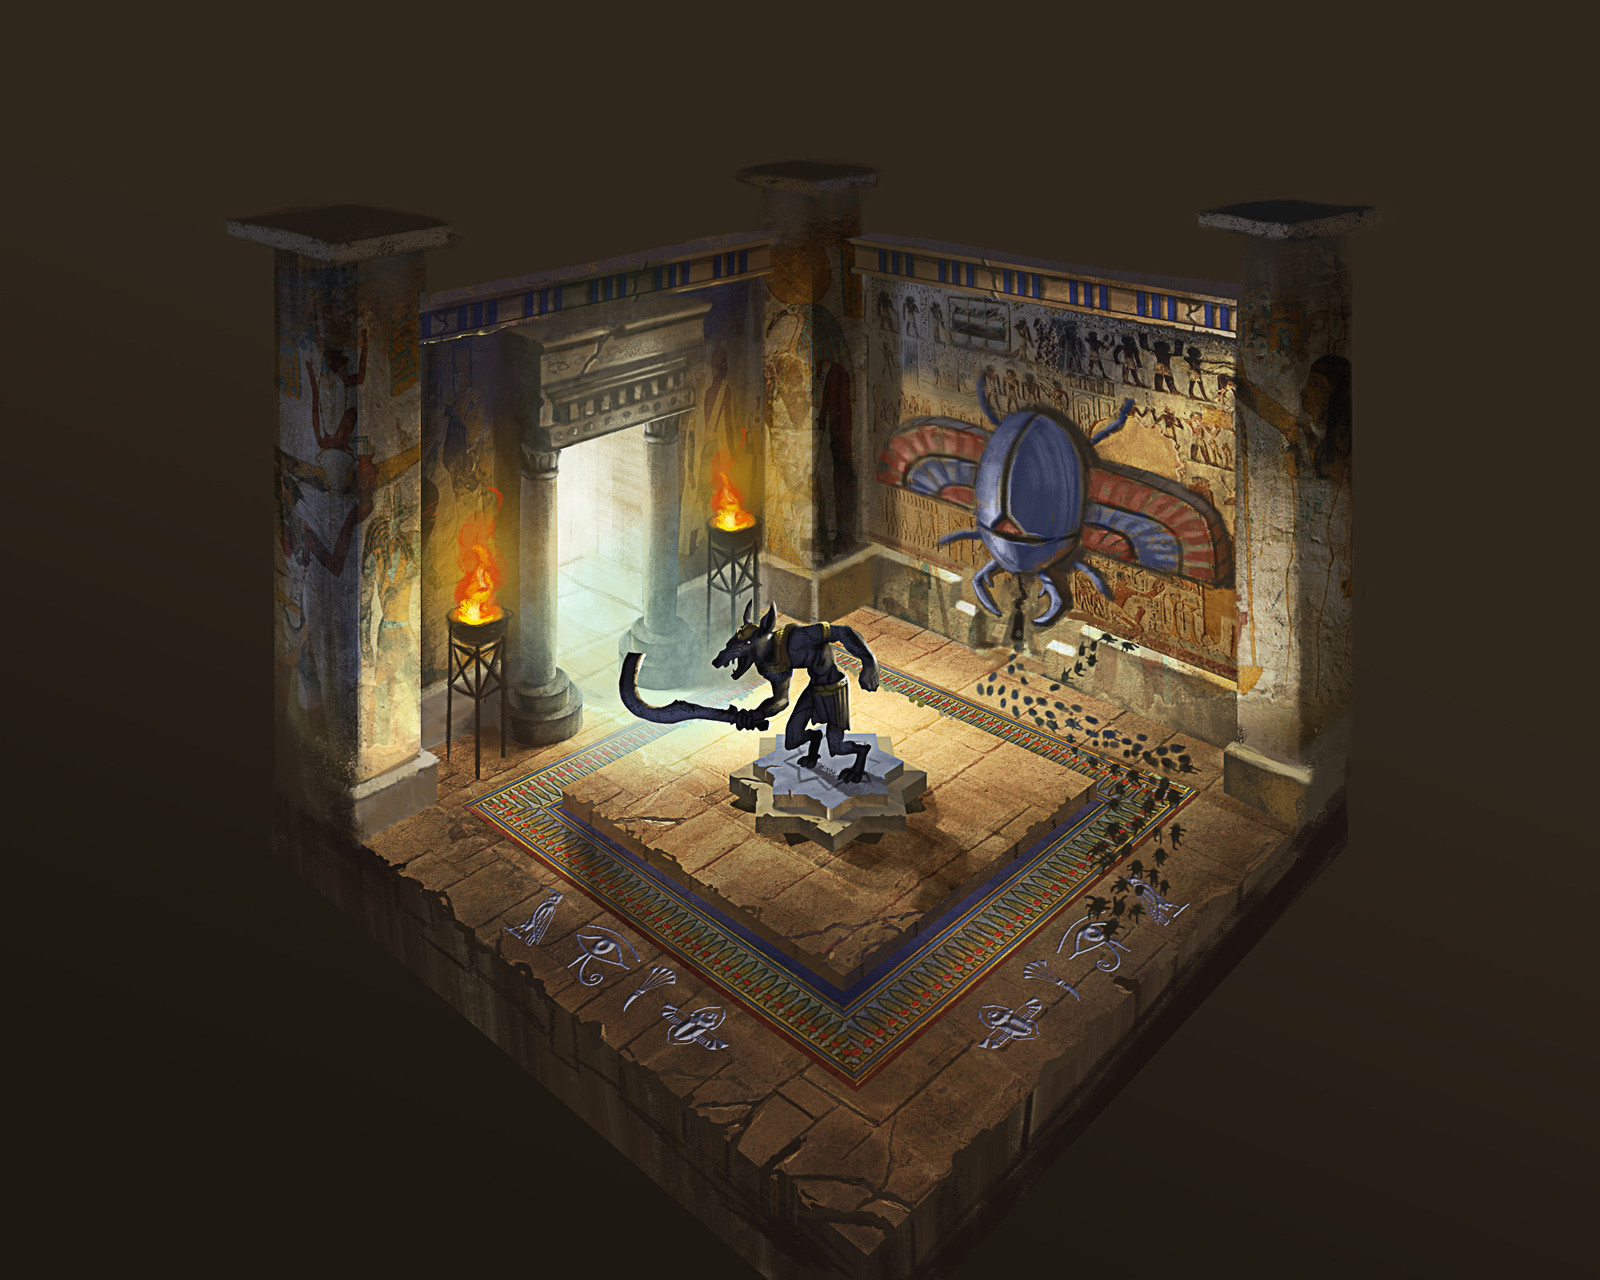 Step on the wrong stone and awaken Anubis to your doom.